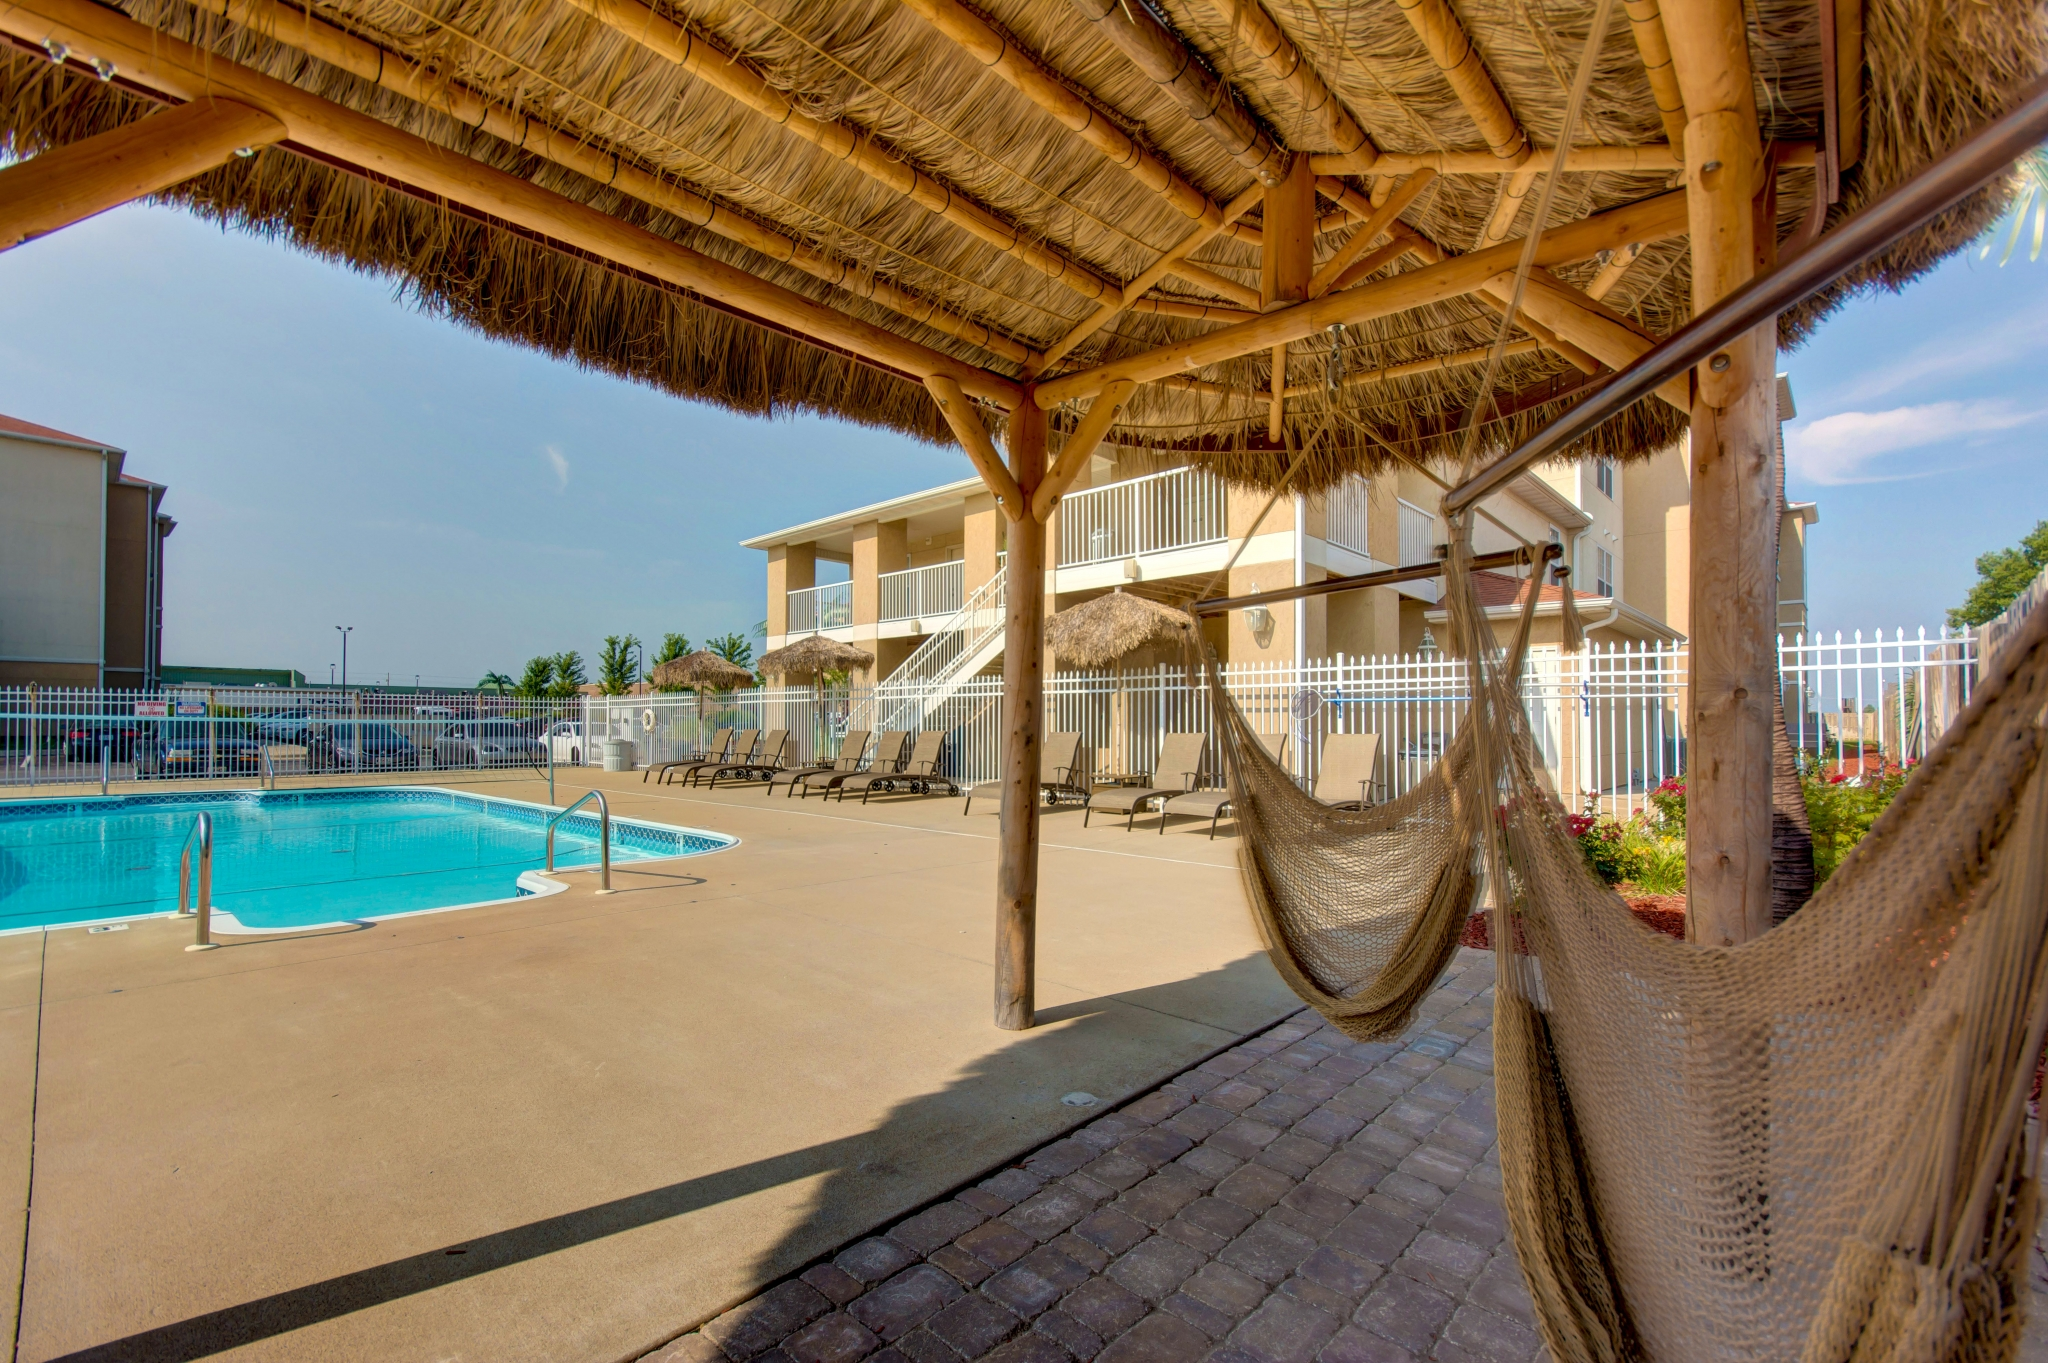 Palm Village - TLC Properties - Apartments Springfield, MO - Pool - Outdoor Pool - Swimming Pool - Luxury